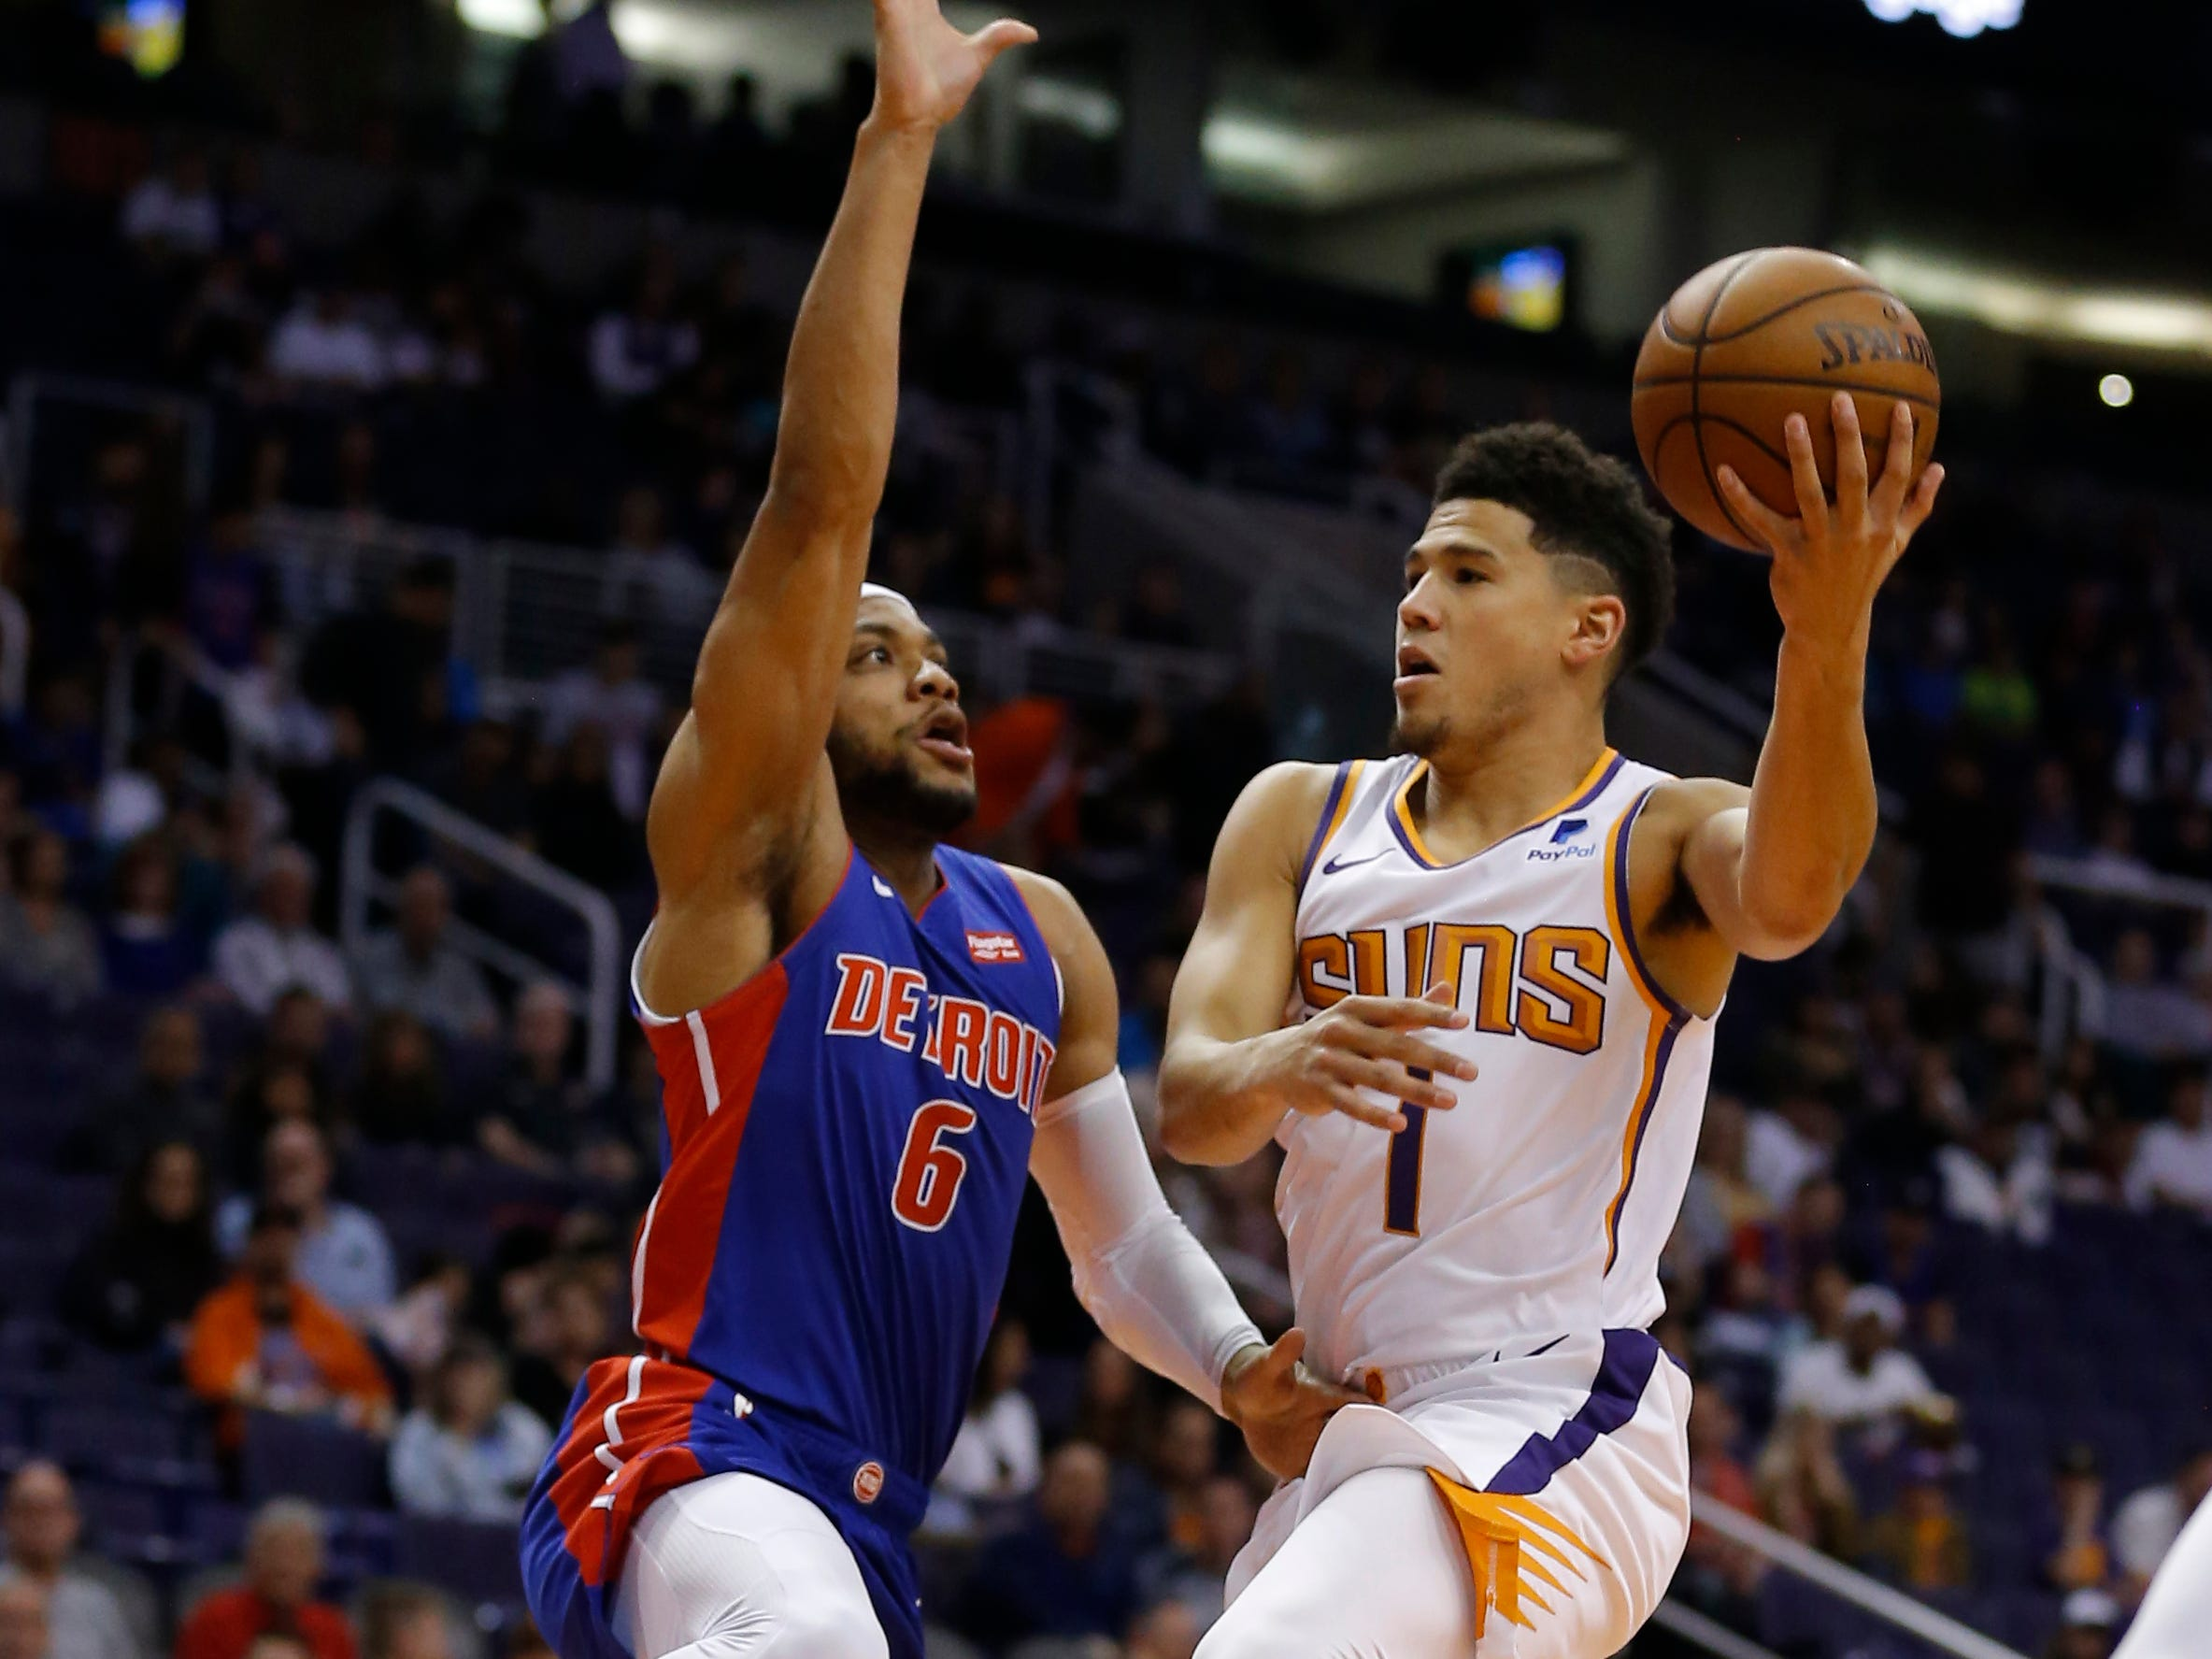 Mar 21, 2019; Phoenix, AZ, USA; Phoenix Suns guard Devin Booker (1) drives on Detroit Pistons guard Bruce Brown (6) in the first half during an NBA basketball game at Talking Stick Resort Arena.